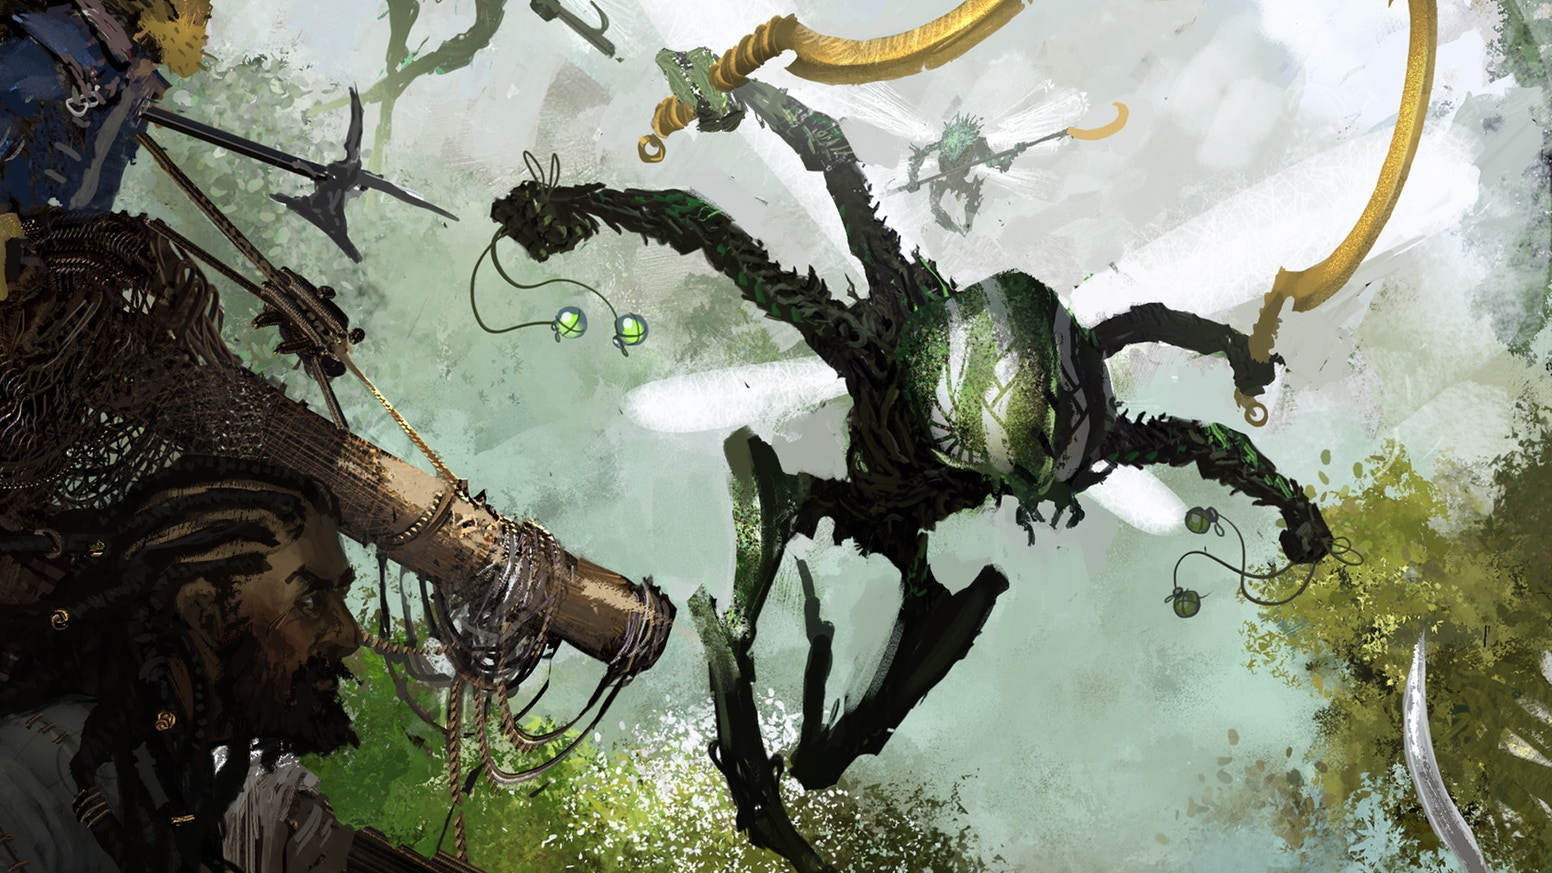 A post-fall fantasy tabletop roleplaying game set in a rampant ocean of verdant green.